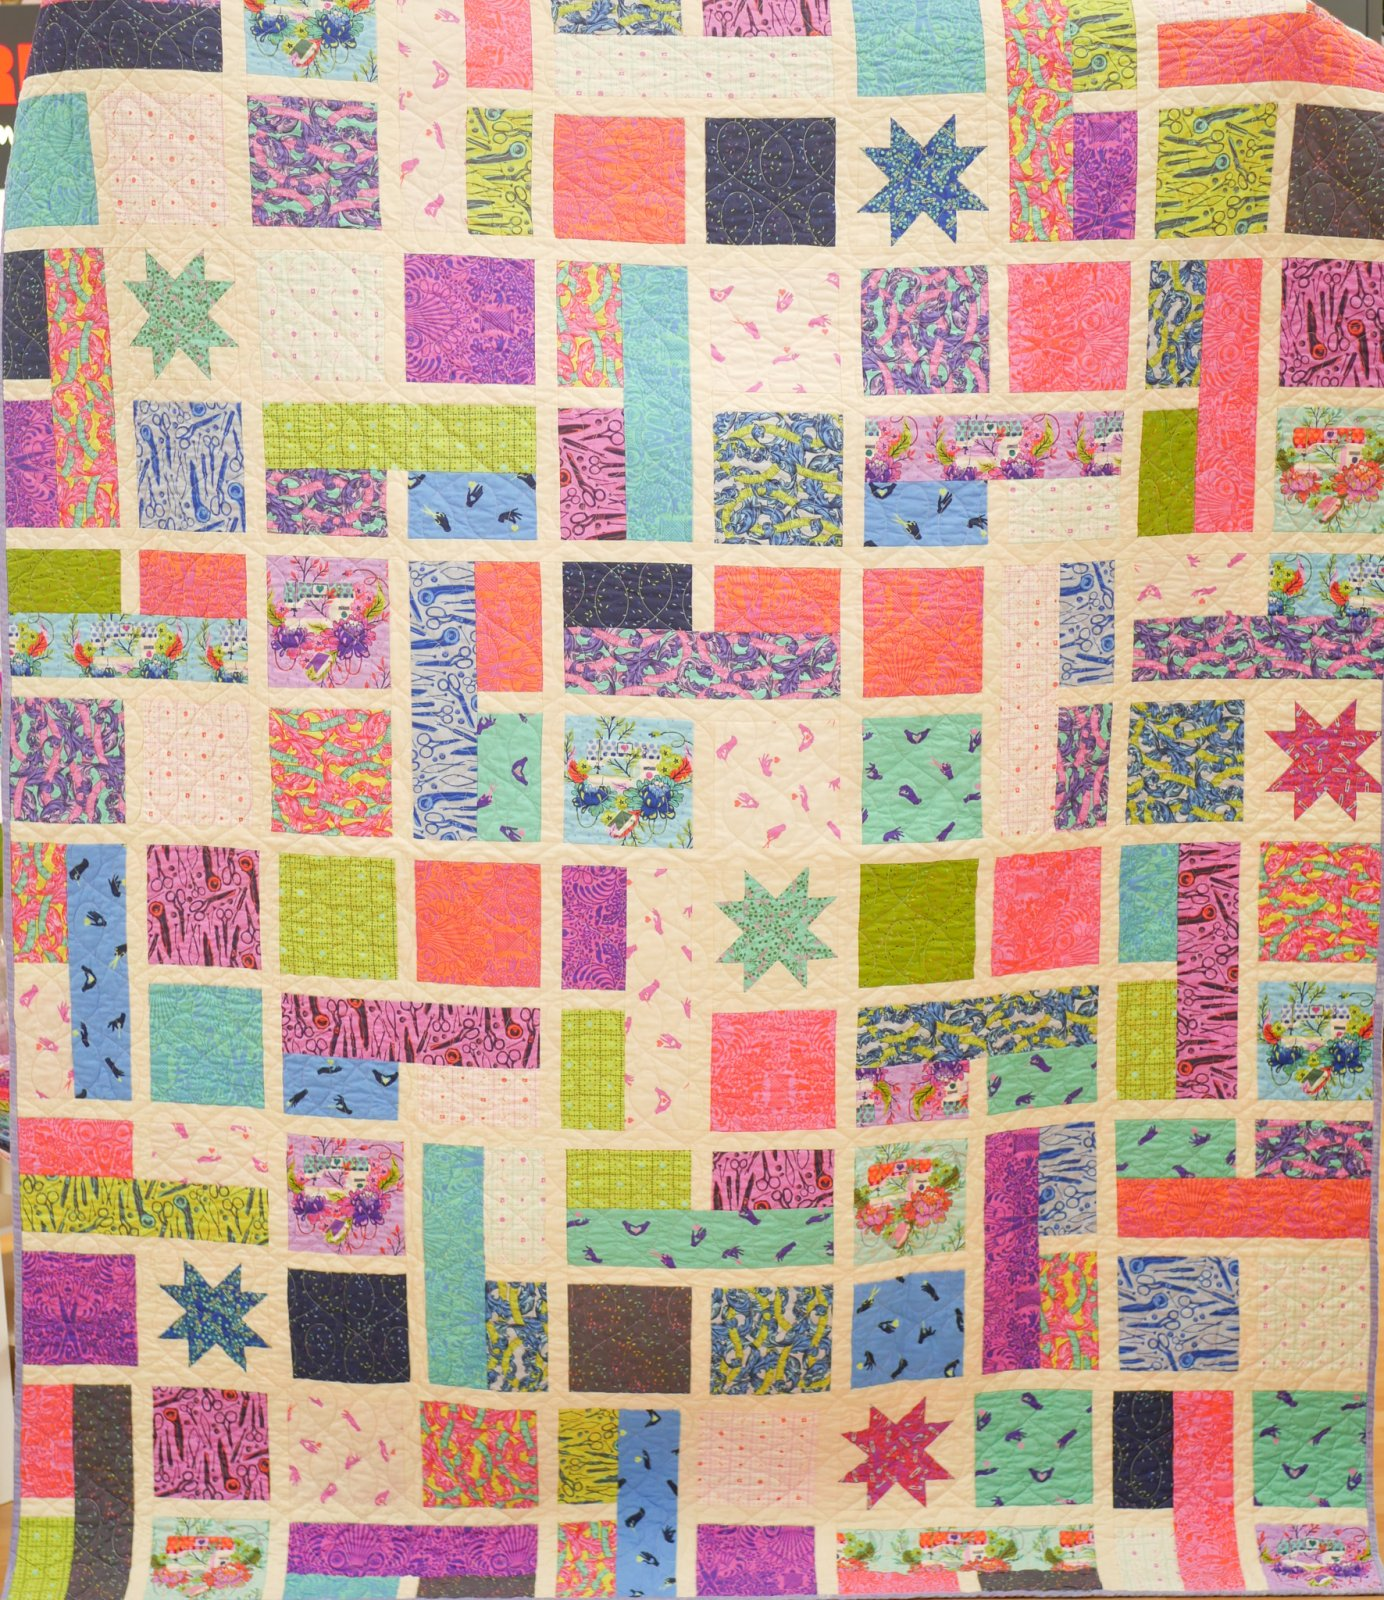 Quilt Kit - Tula Pink Homemade